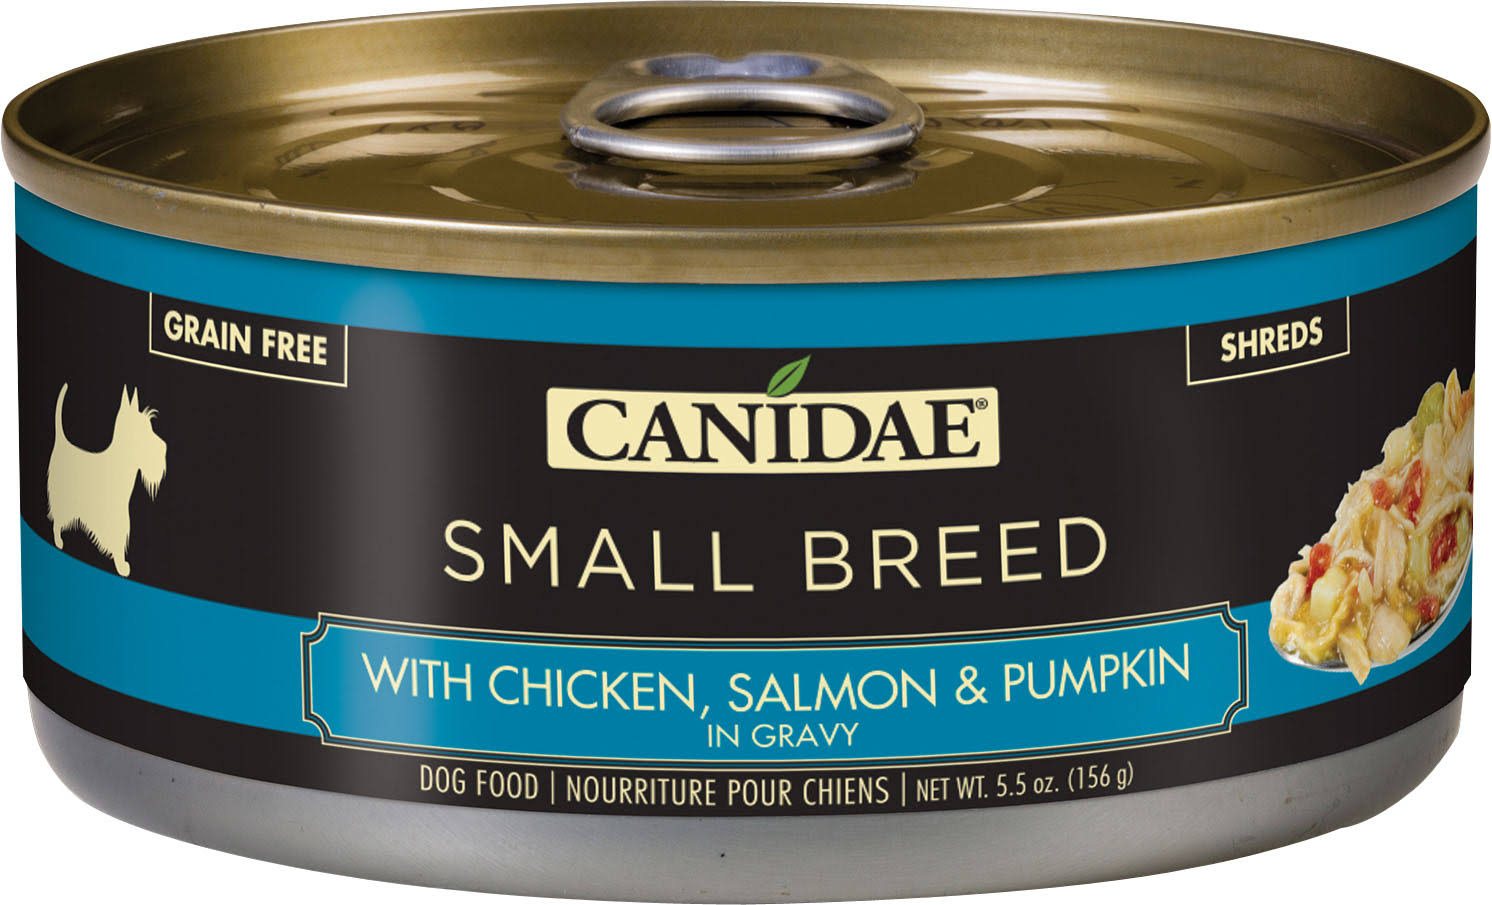 Canidae Grain Free with Chicken, Salmon & Pumpkin in Gravy Small Breed Dog Food Shreds - 0.34 lb